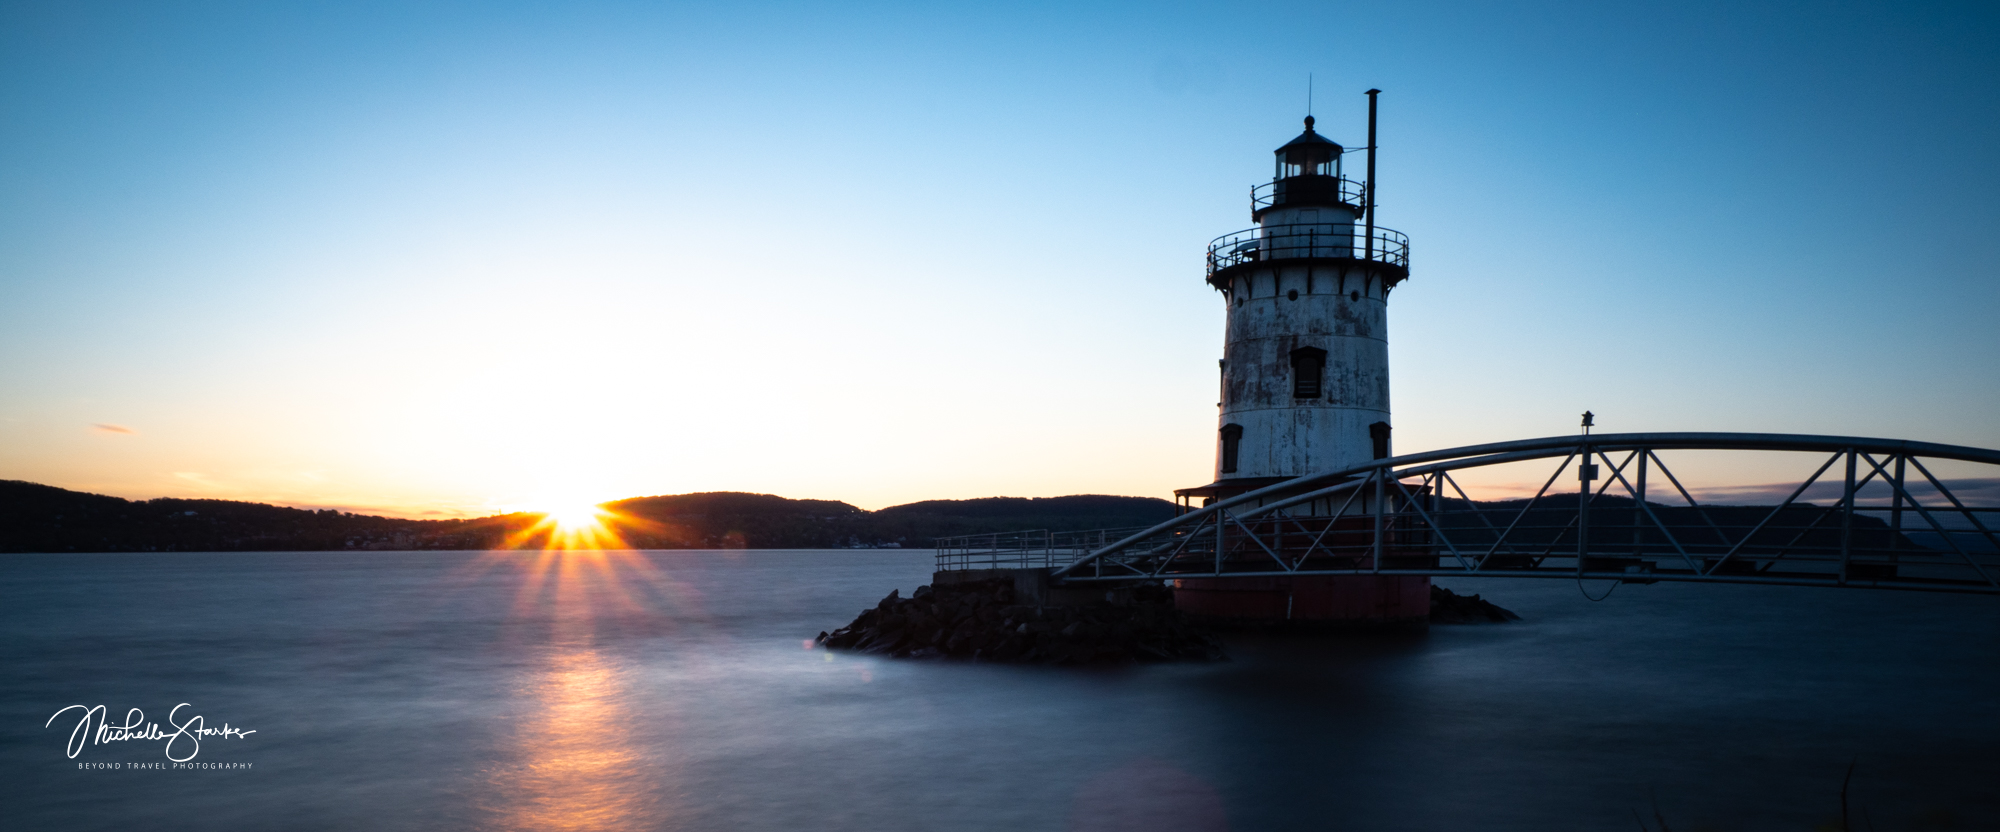 Tarrytown Lighthouse, Tarrytown, NY